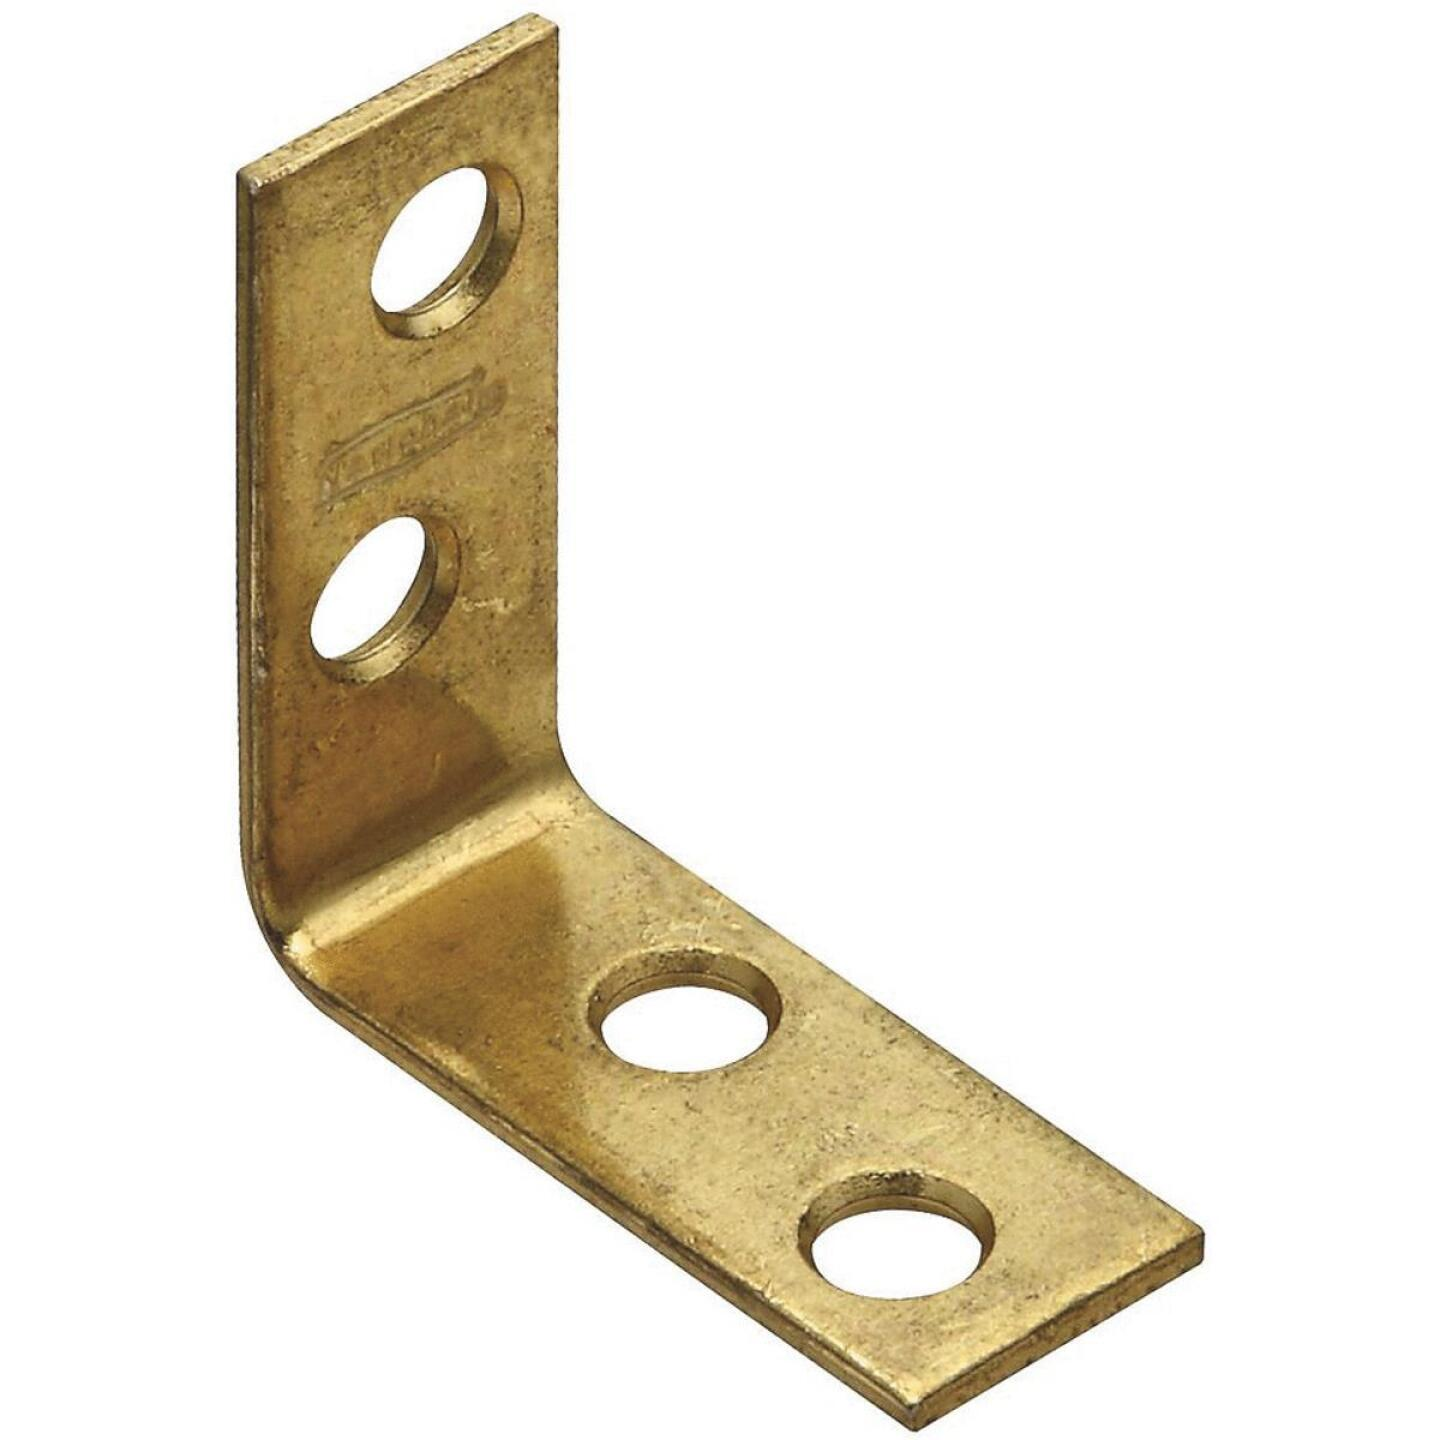 National Catalog V115 1-1/2 In. x 5/8 In. Brass Steel Corner Brace (4-Count) Image 1